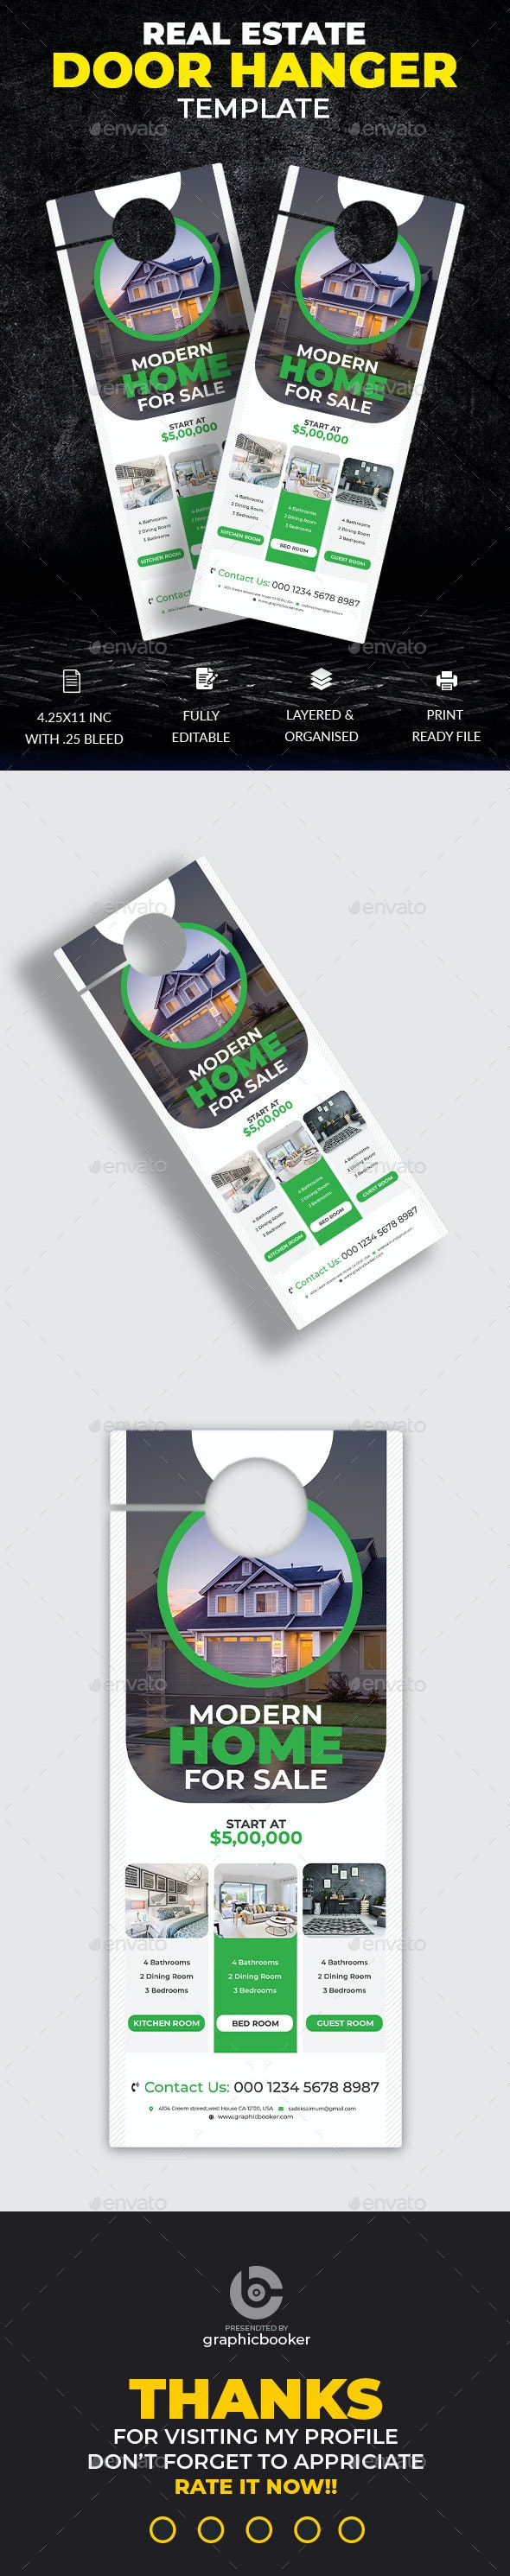 Real Estate Door Hanger Template - Miscellaneous Print Templates